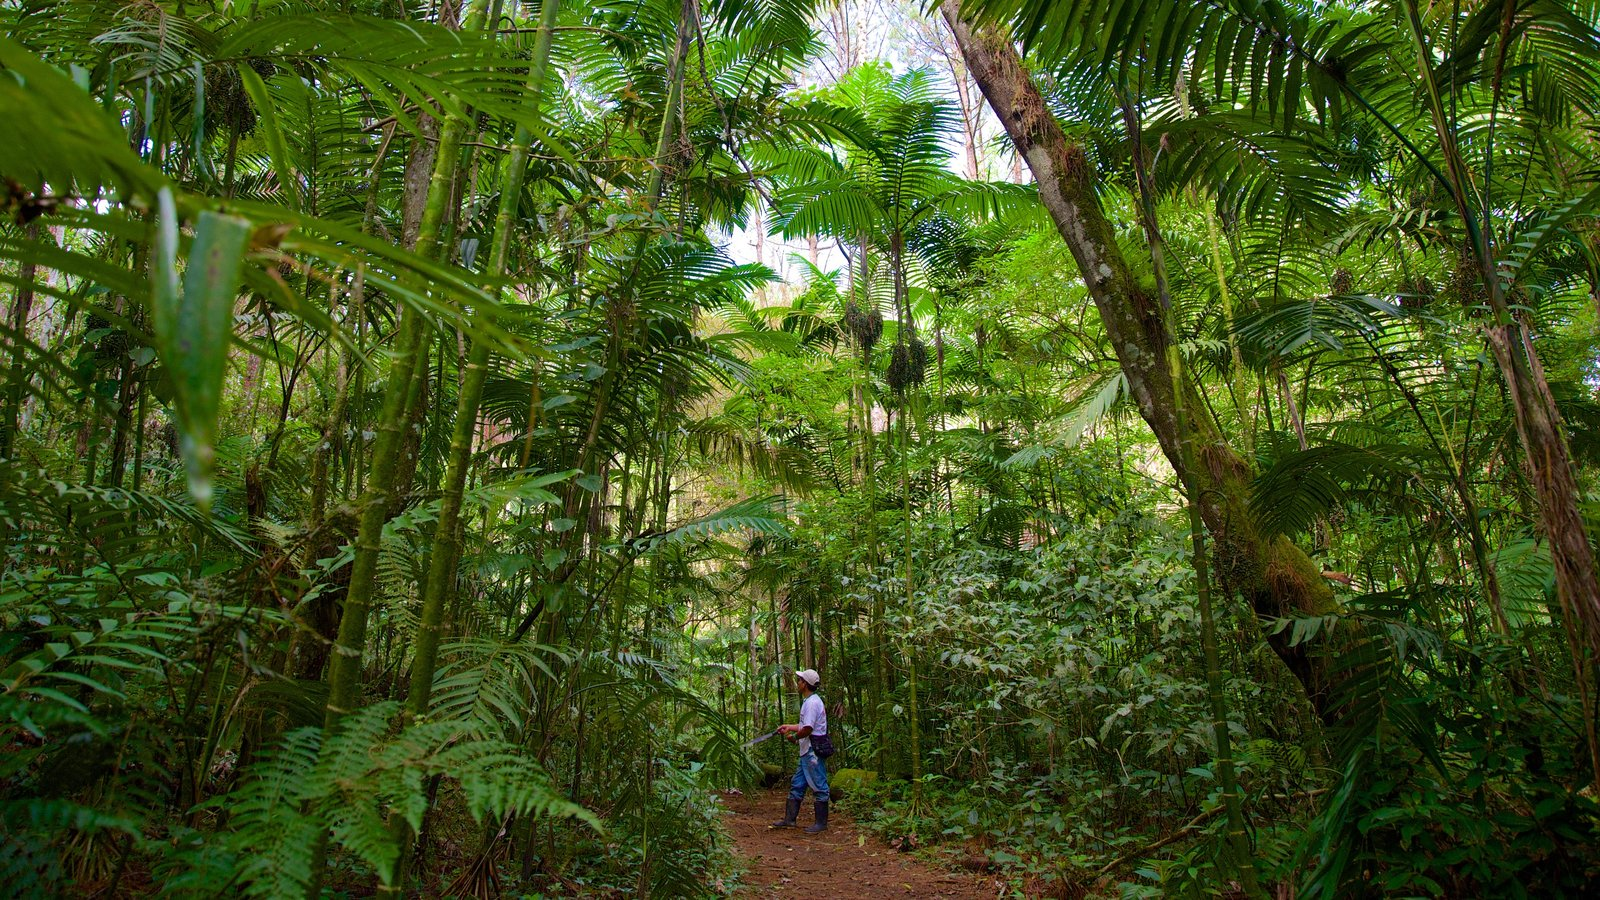 Las Victorias National Park showing rainforest as well as an individual male